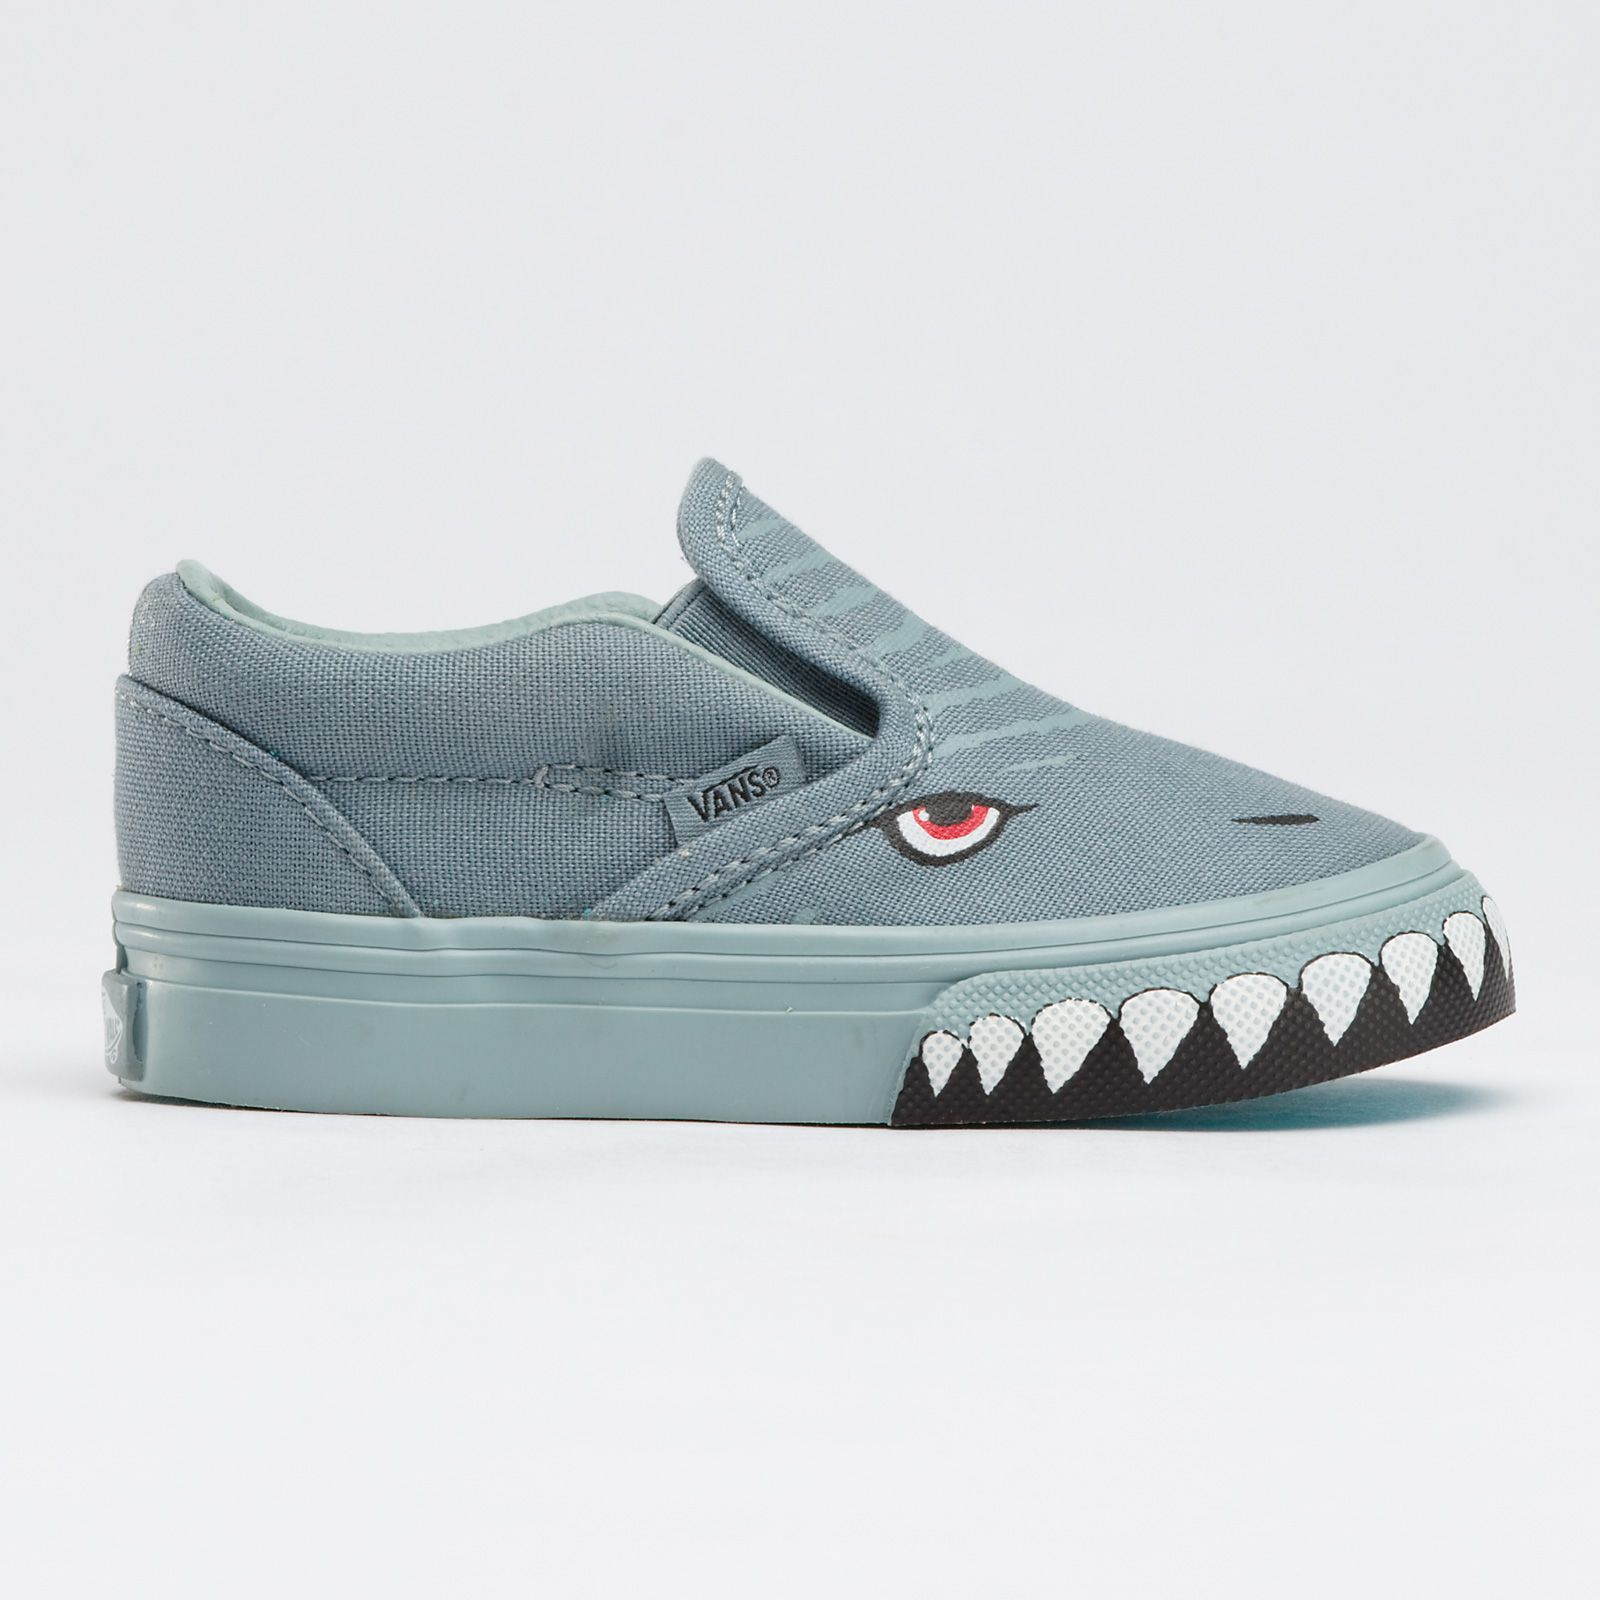 $35 Shark Toddler Shoes by Vans For the Baby s Room